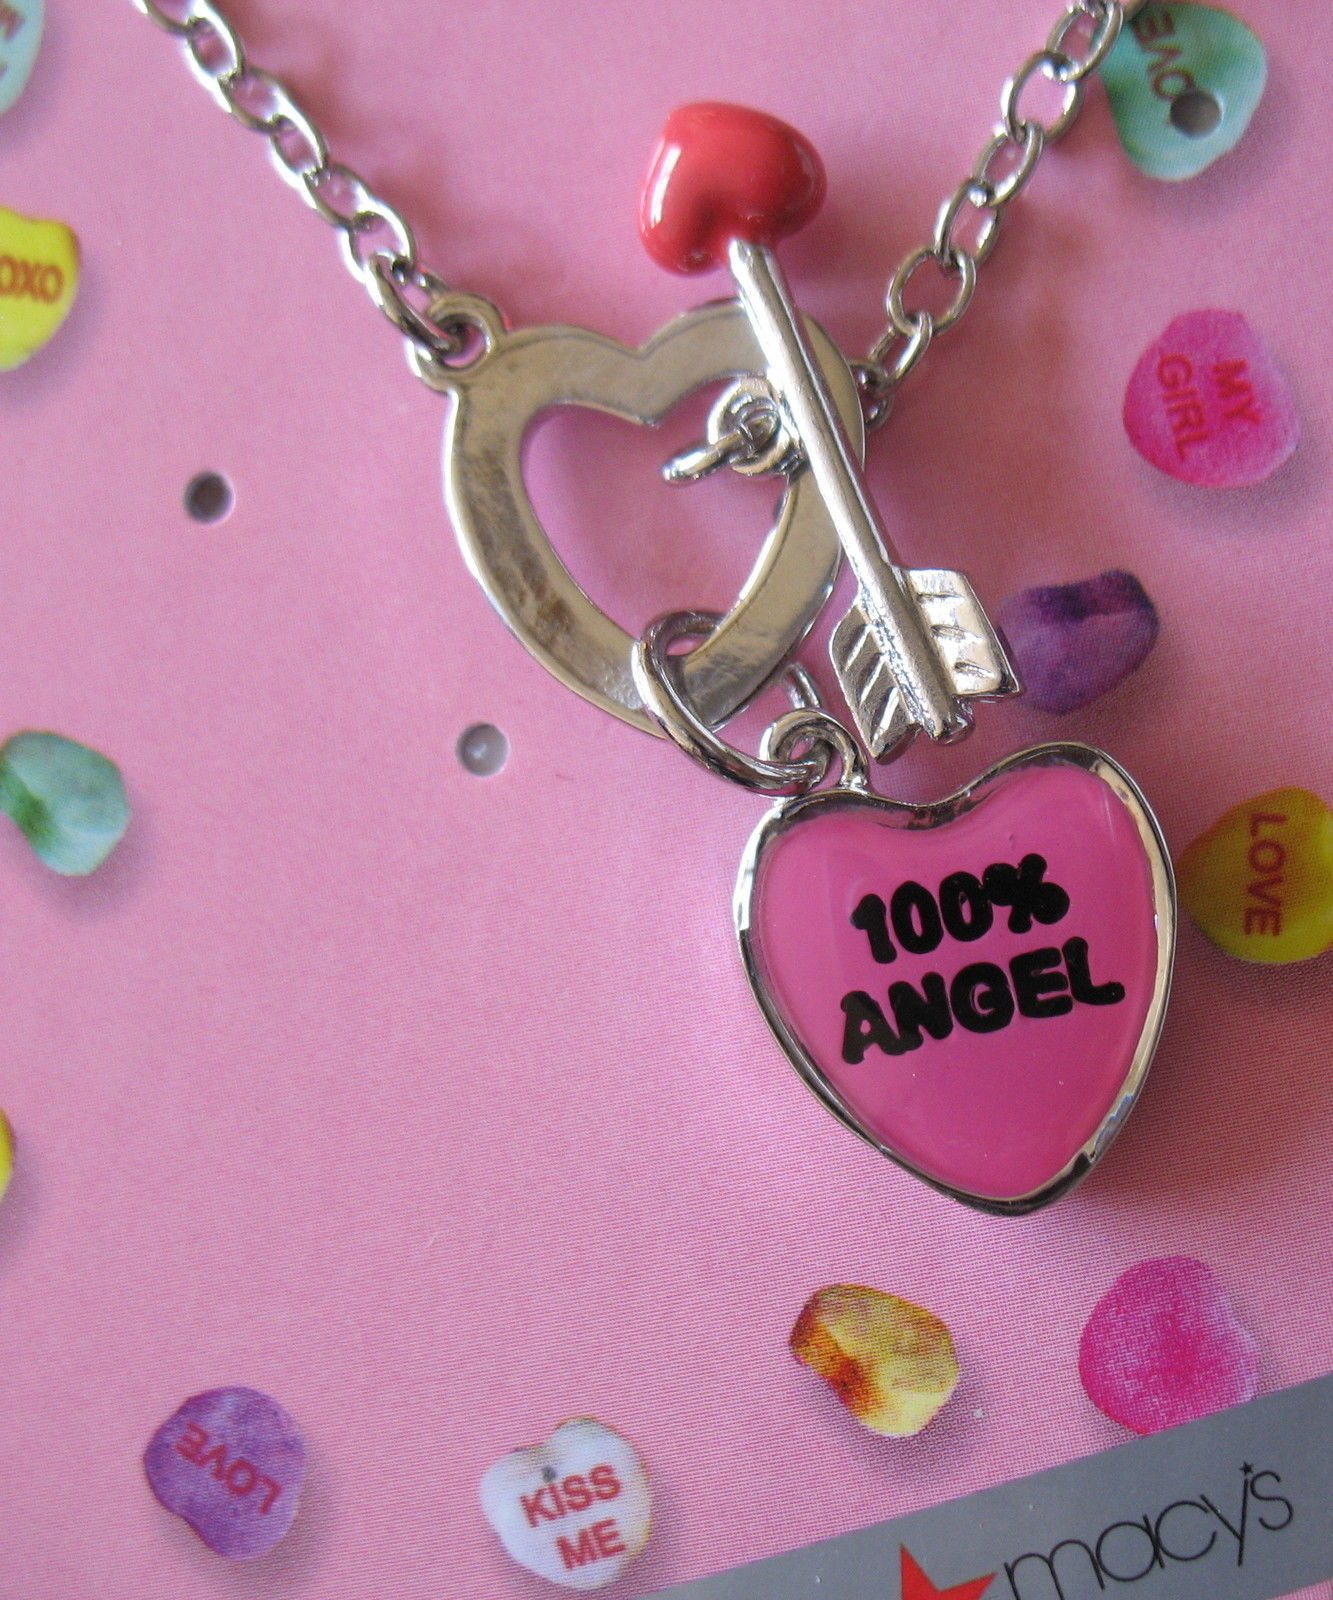 Sweetheart Necklace New Candy Hearts Pink 100% Angel Silver Tone Chain Cupid